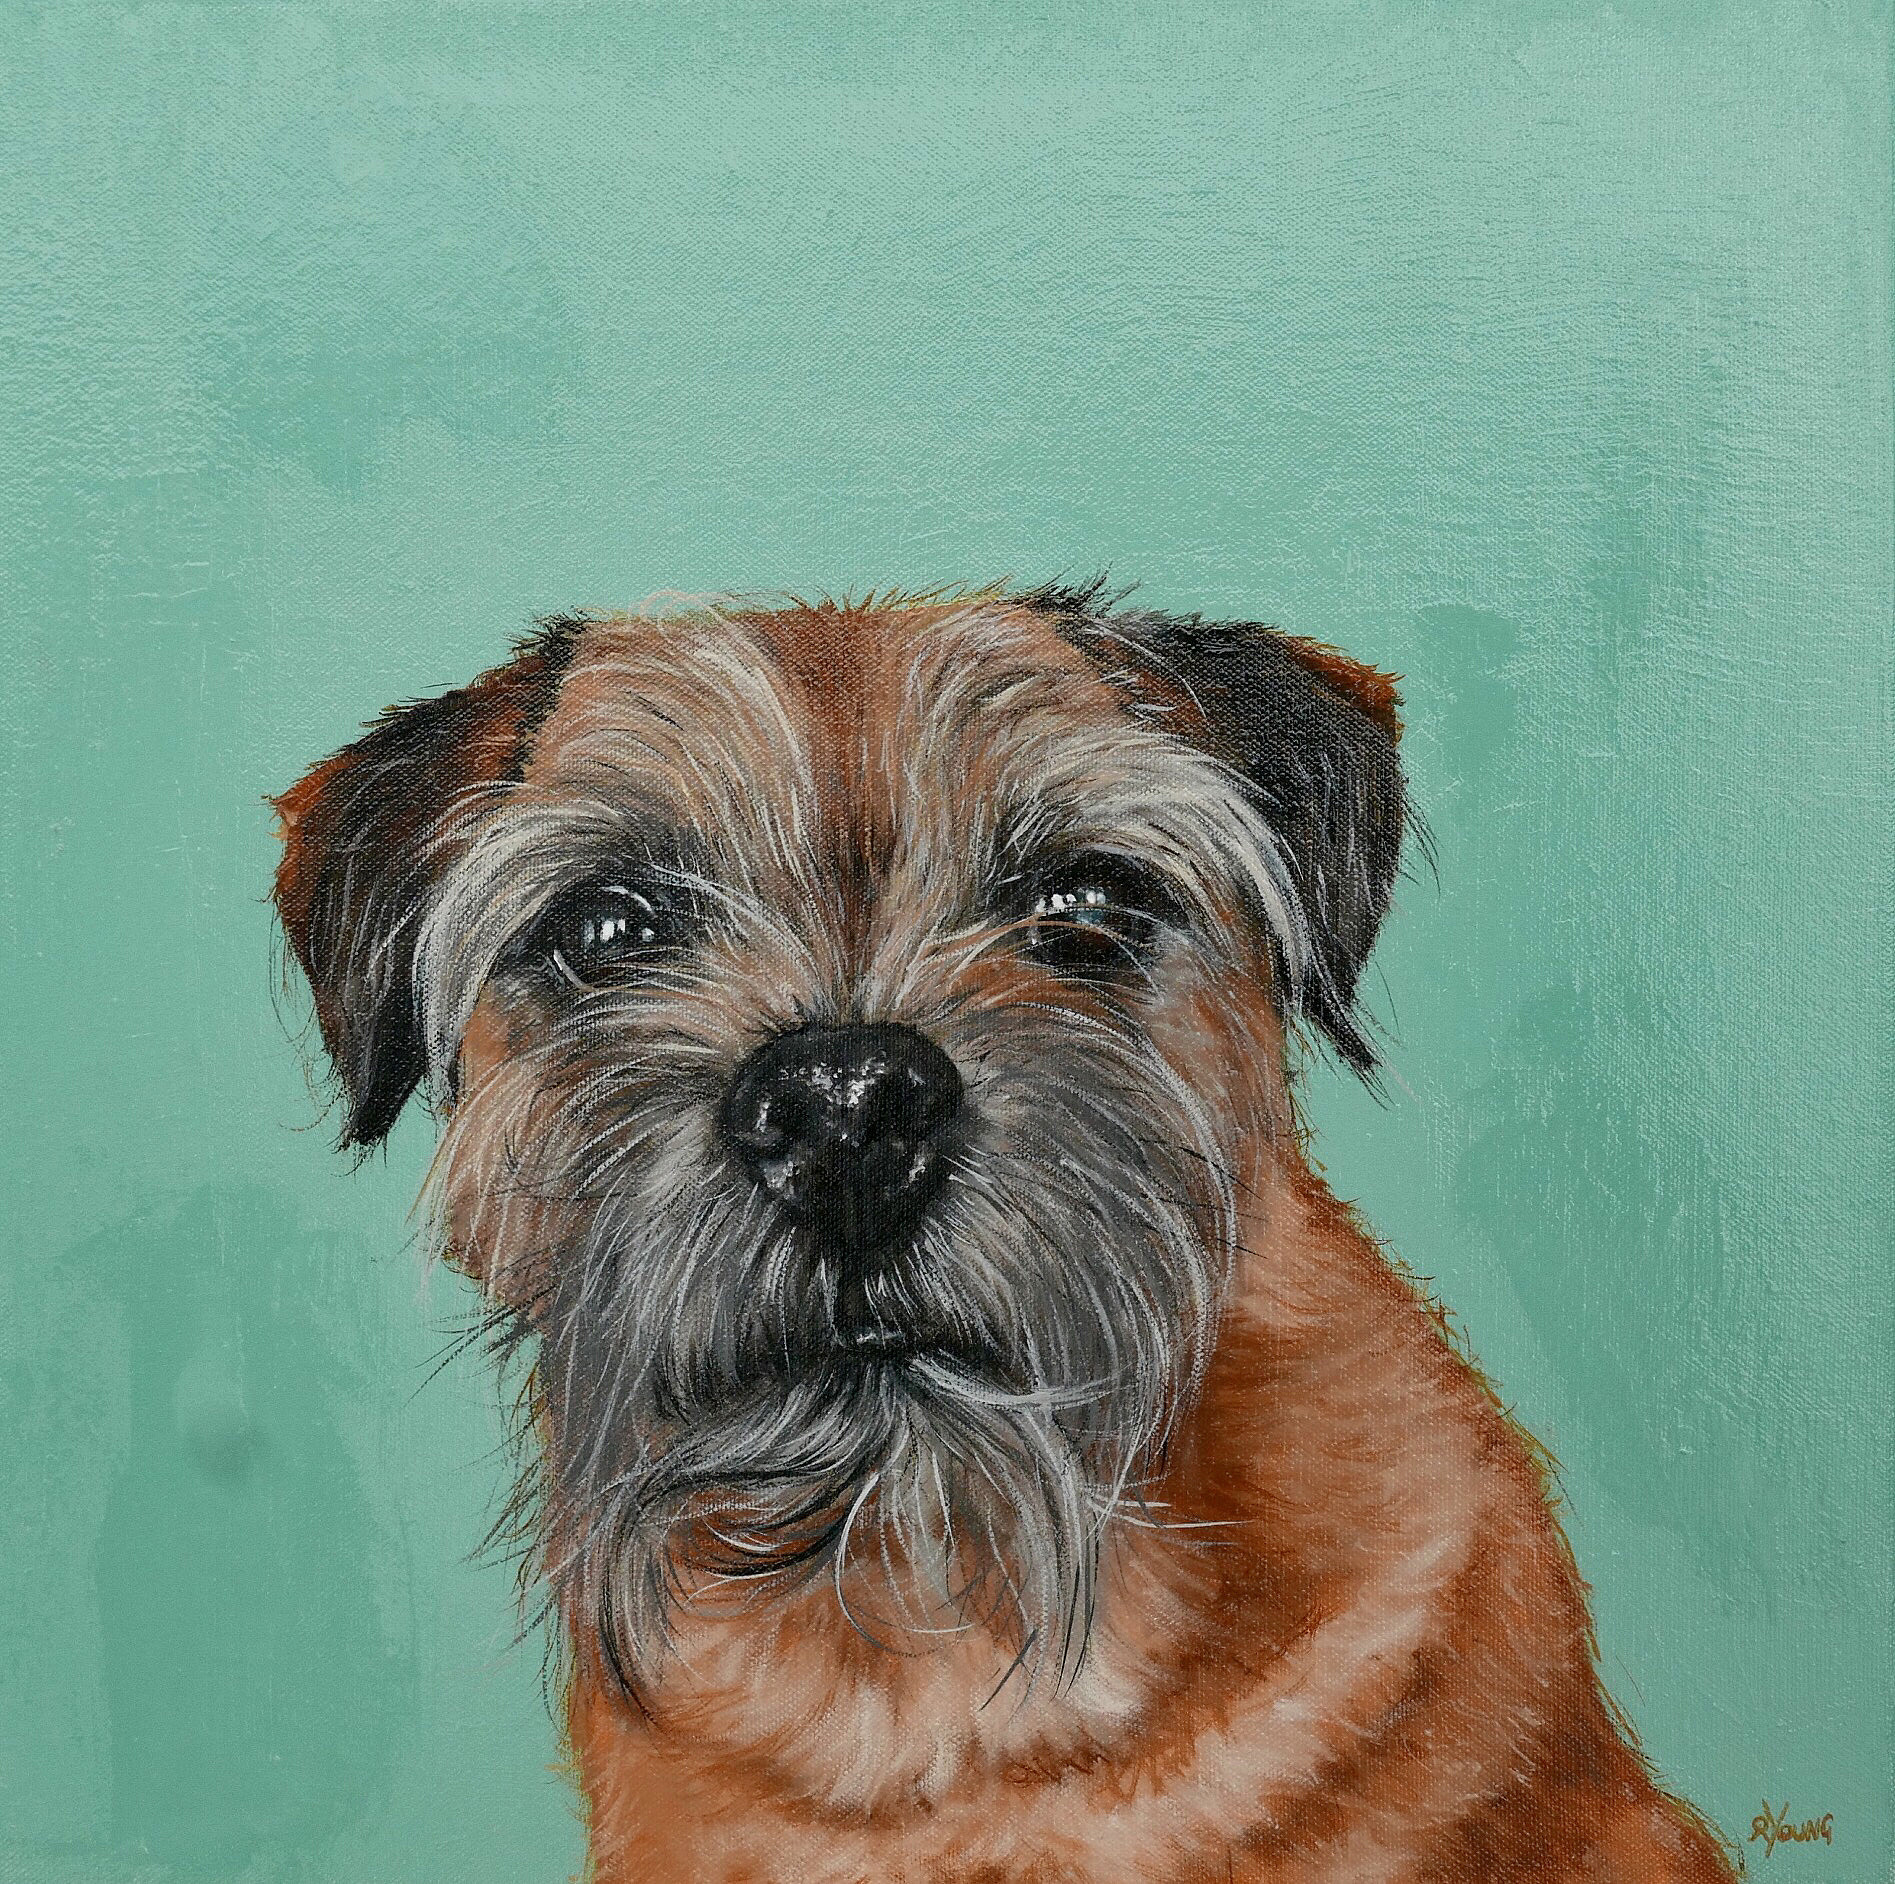 Rowland north west dog painting